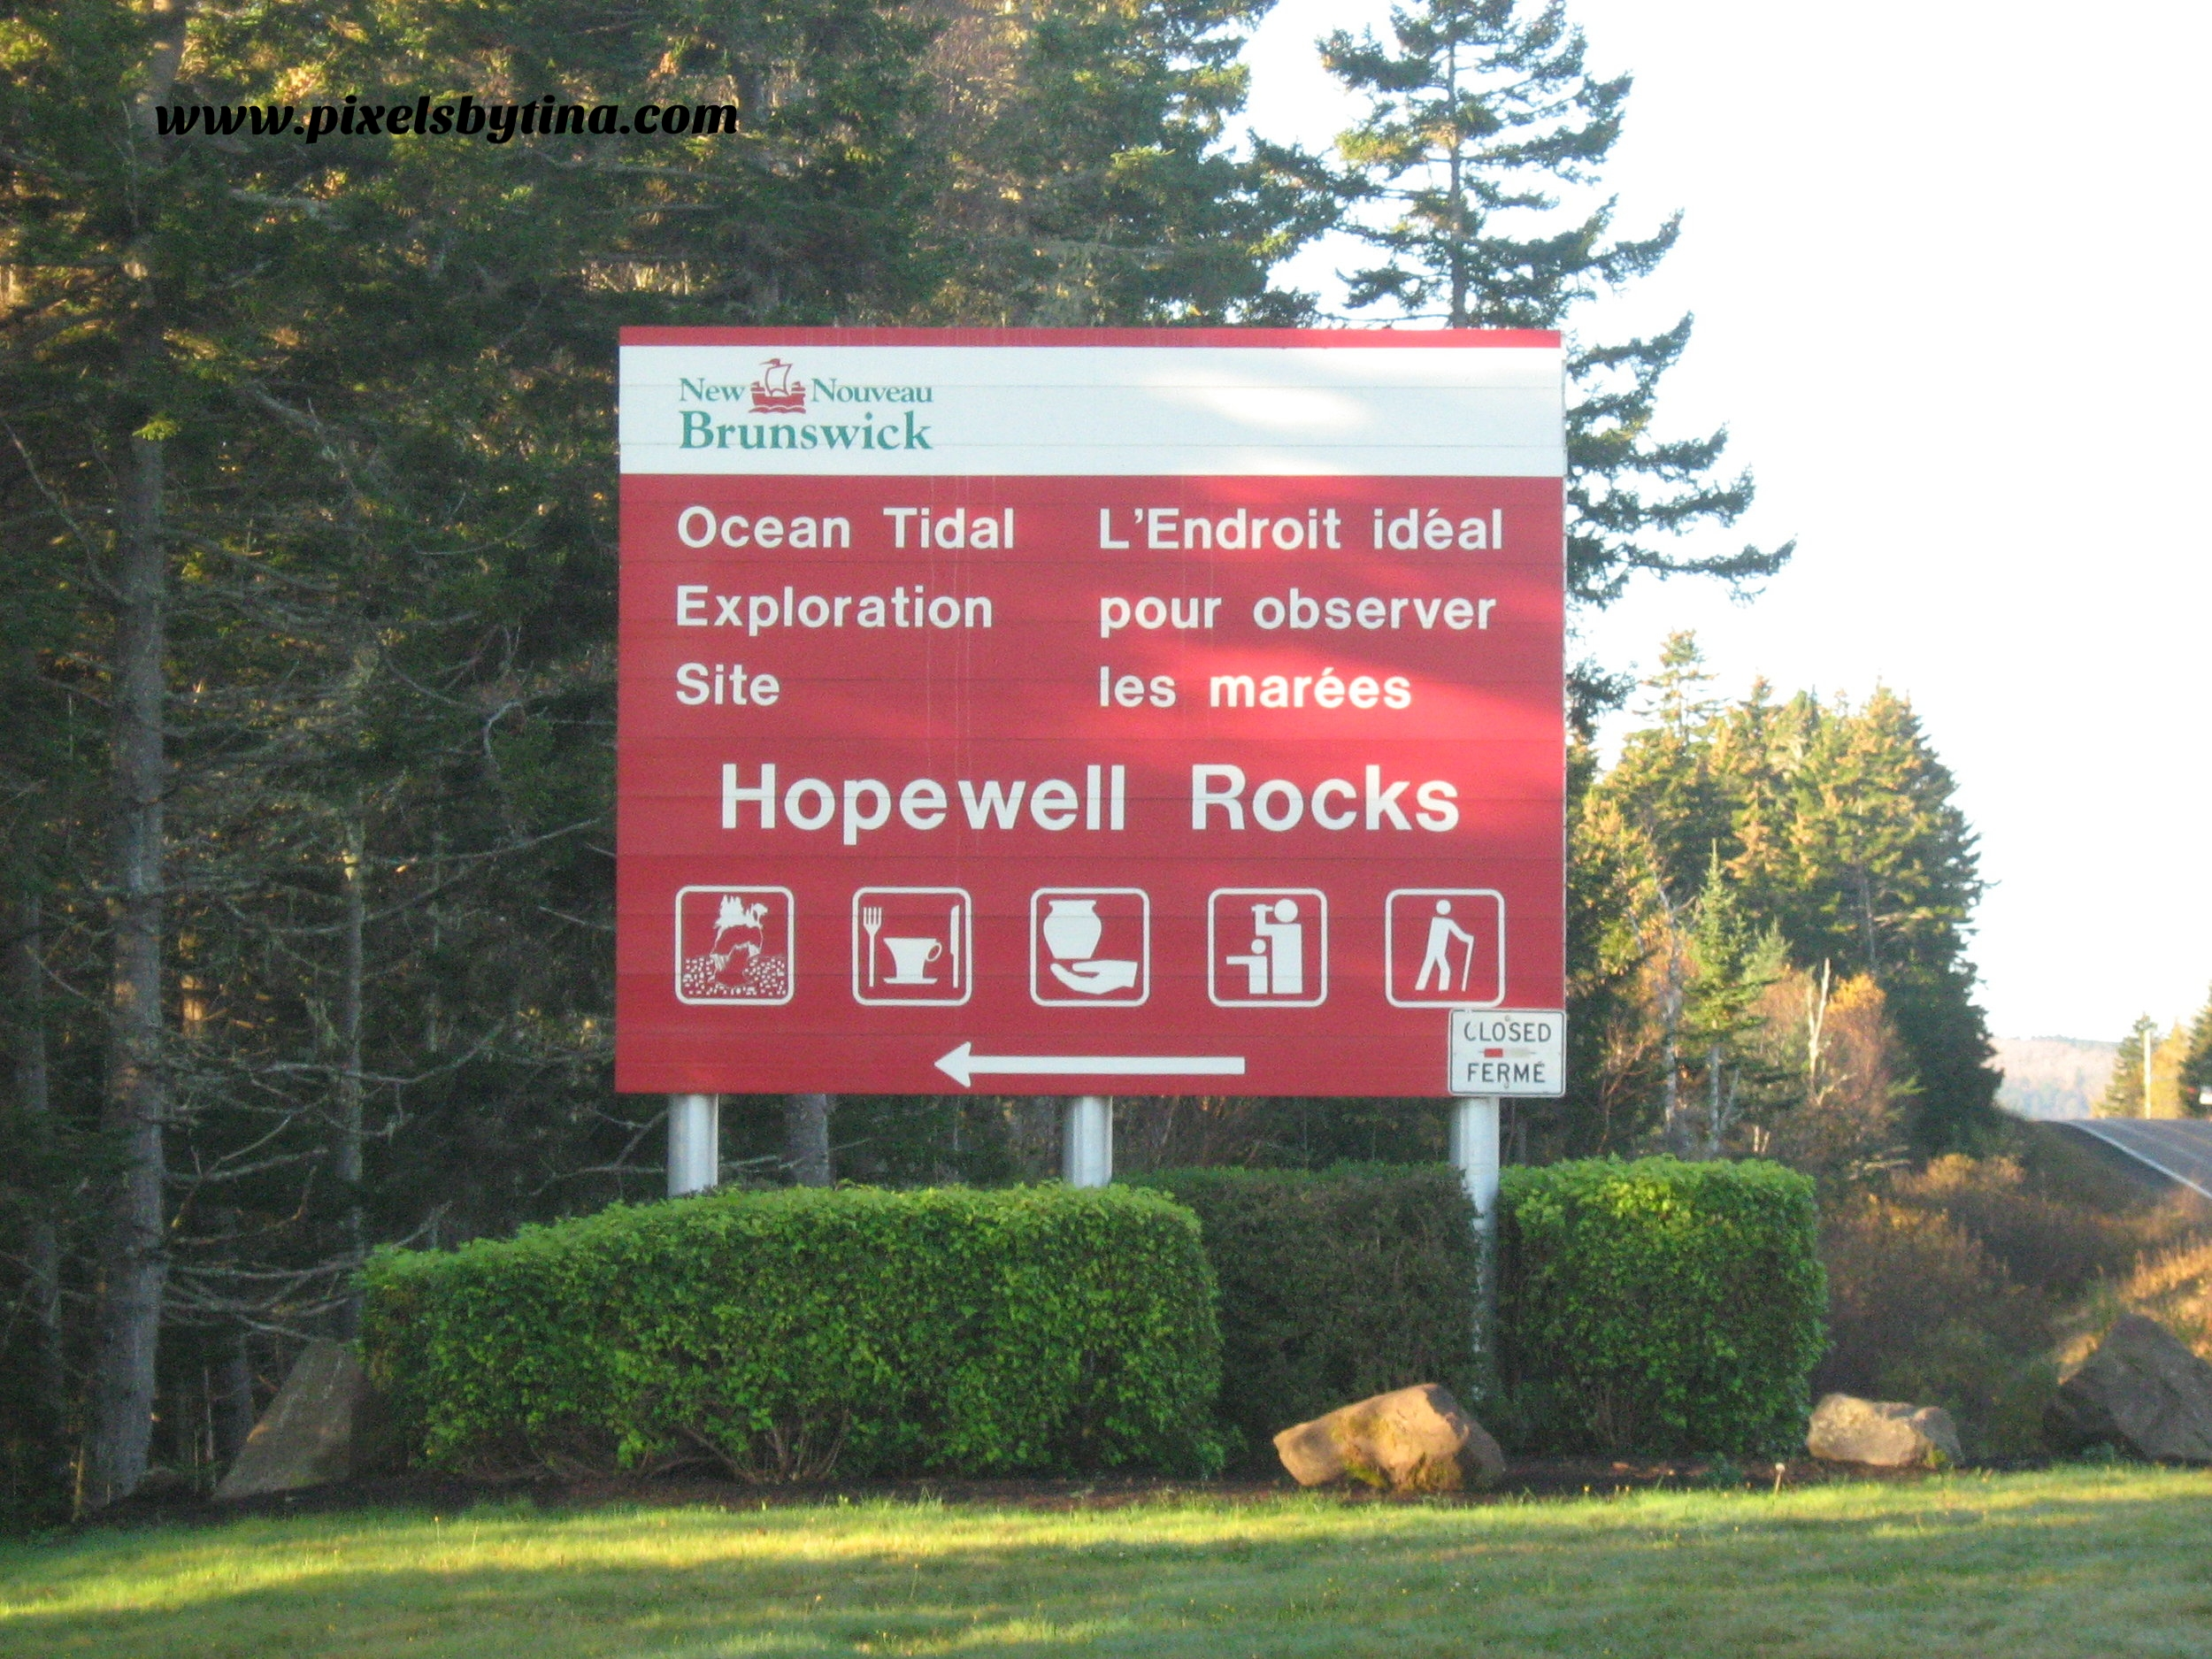 entrance sign to hopewell rocks, new brunswick, canada - nature photography & lifestyle blog - pixels by tina